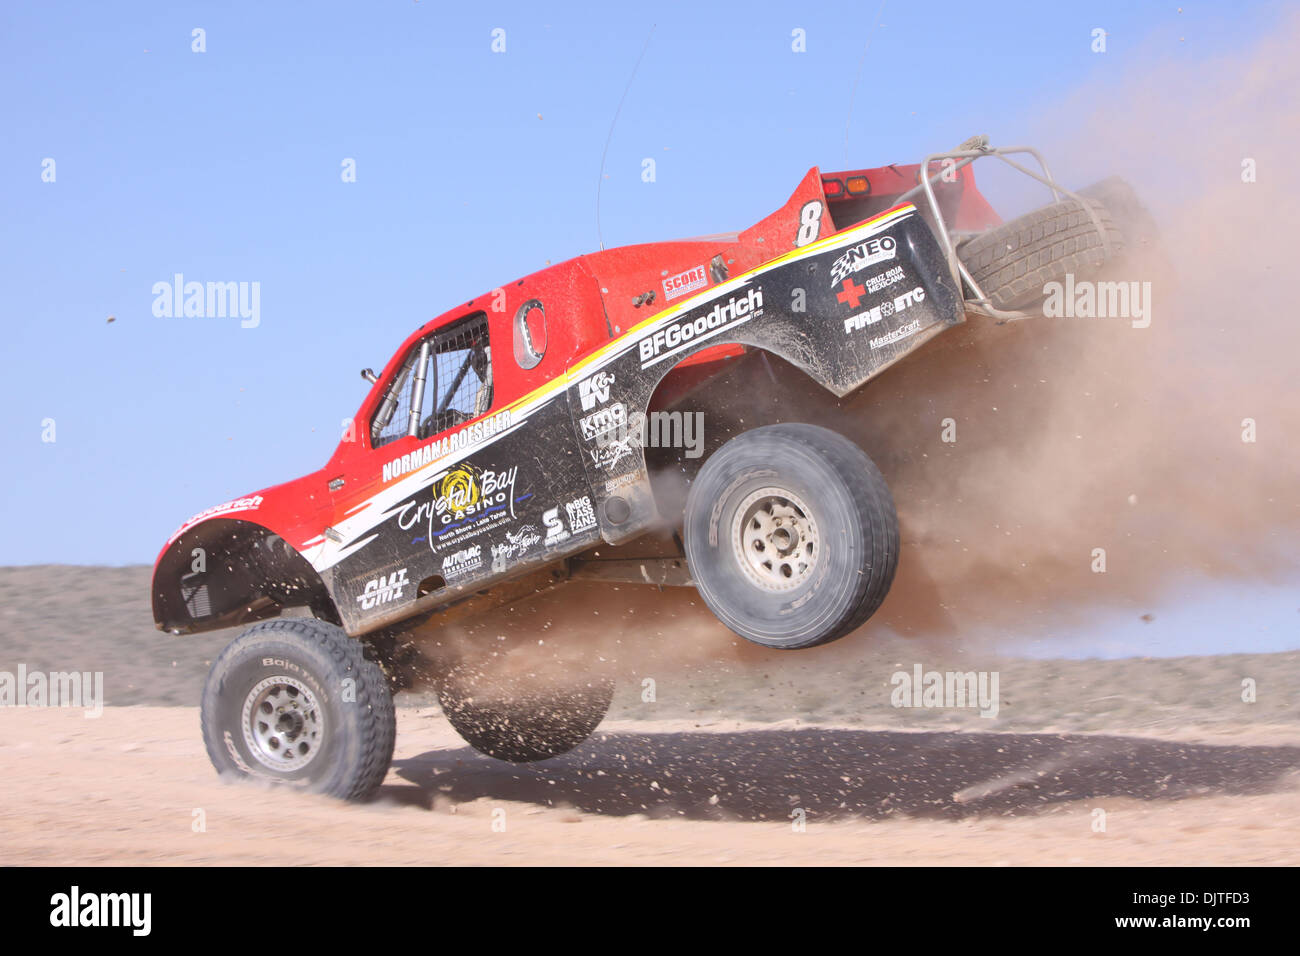 March 27, 2010 Roger Norman (#8) Launches high off a jump trailing dirt behind then lands hard in the dirt during qualifying at the SNORE, Mint 400 off-road race outside Las Vegas Nevada. (Credit Image: © Mike Ingalsbee/Southcreek Global/ZUMApress.com) - Stock Image